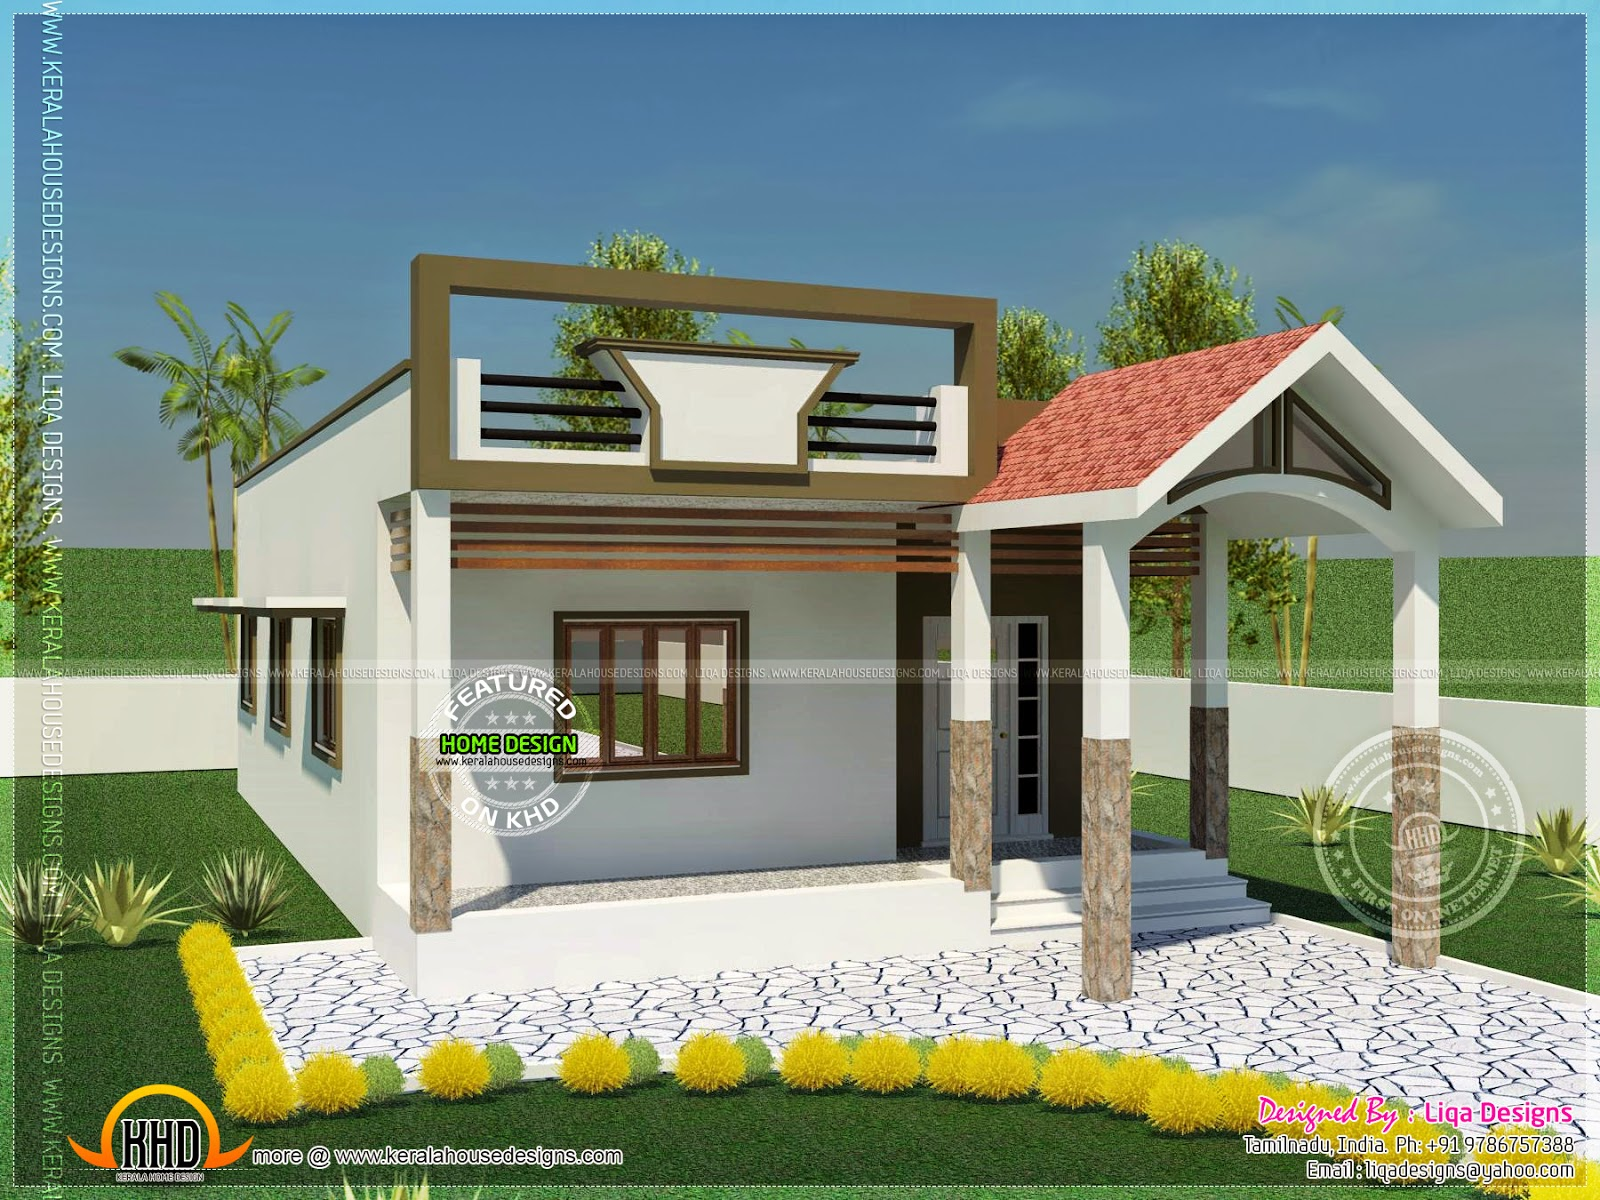 740 square feet single storied house kerala home design for Tamilnadu home design photos